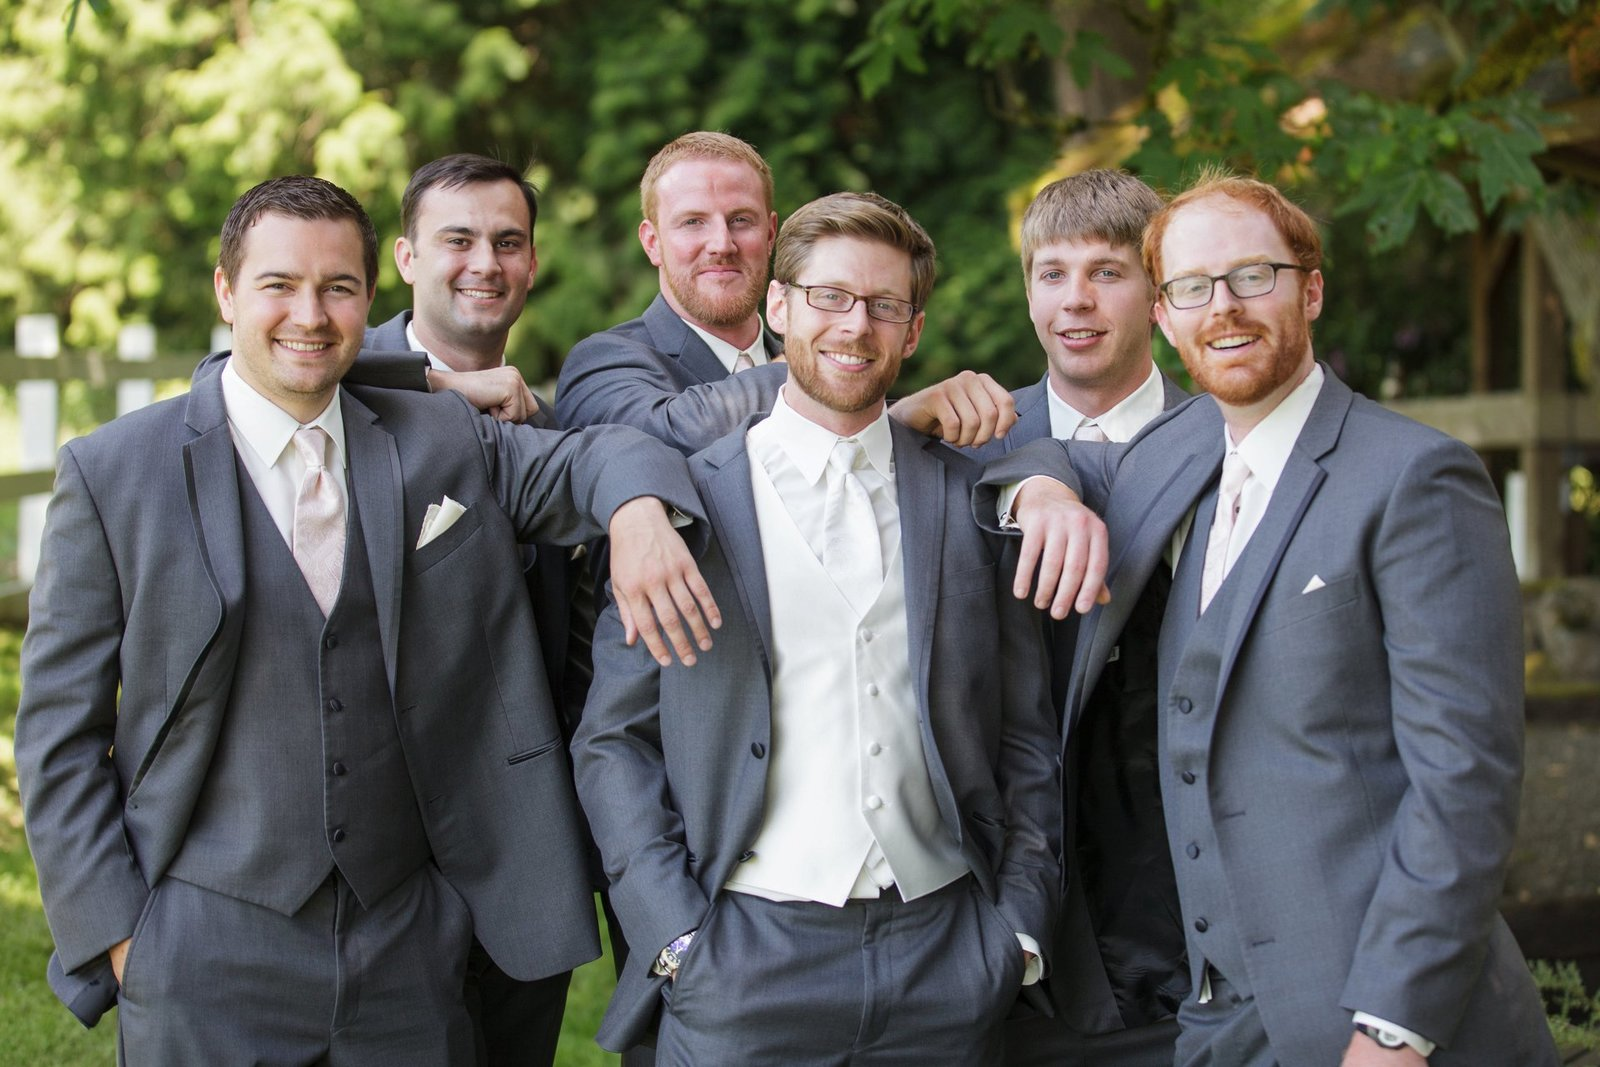 groomsman-portraits-husband-wife-team